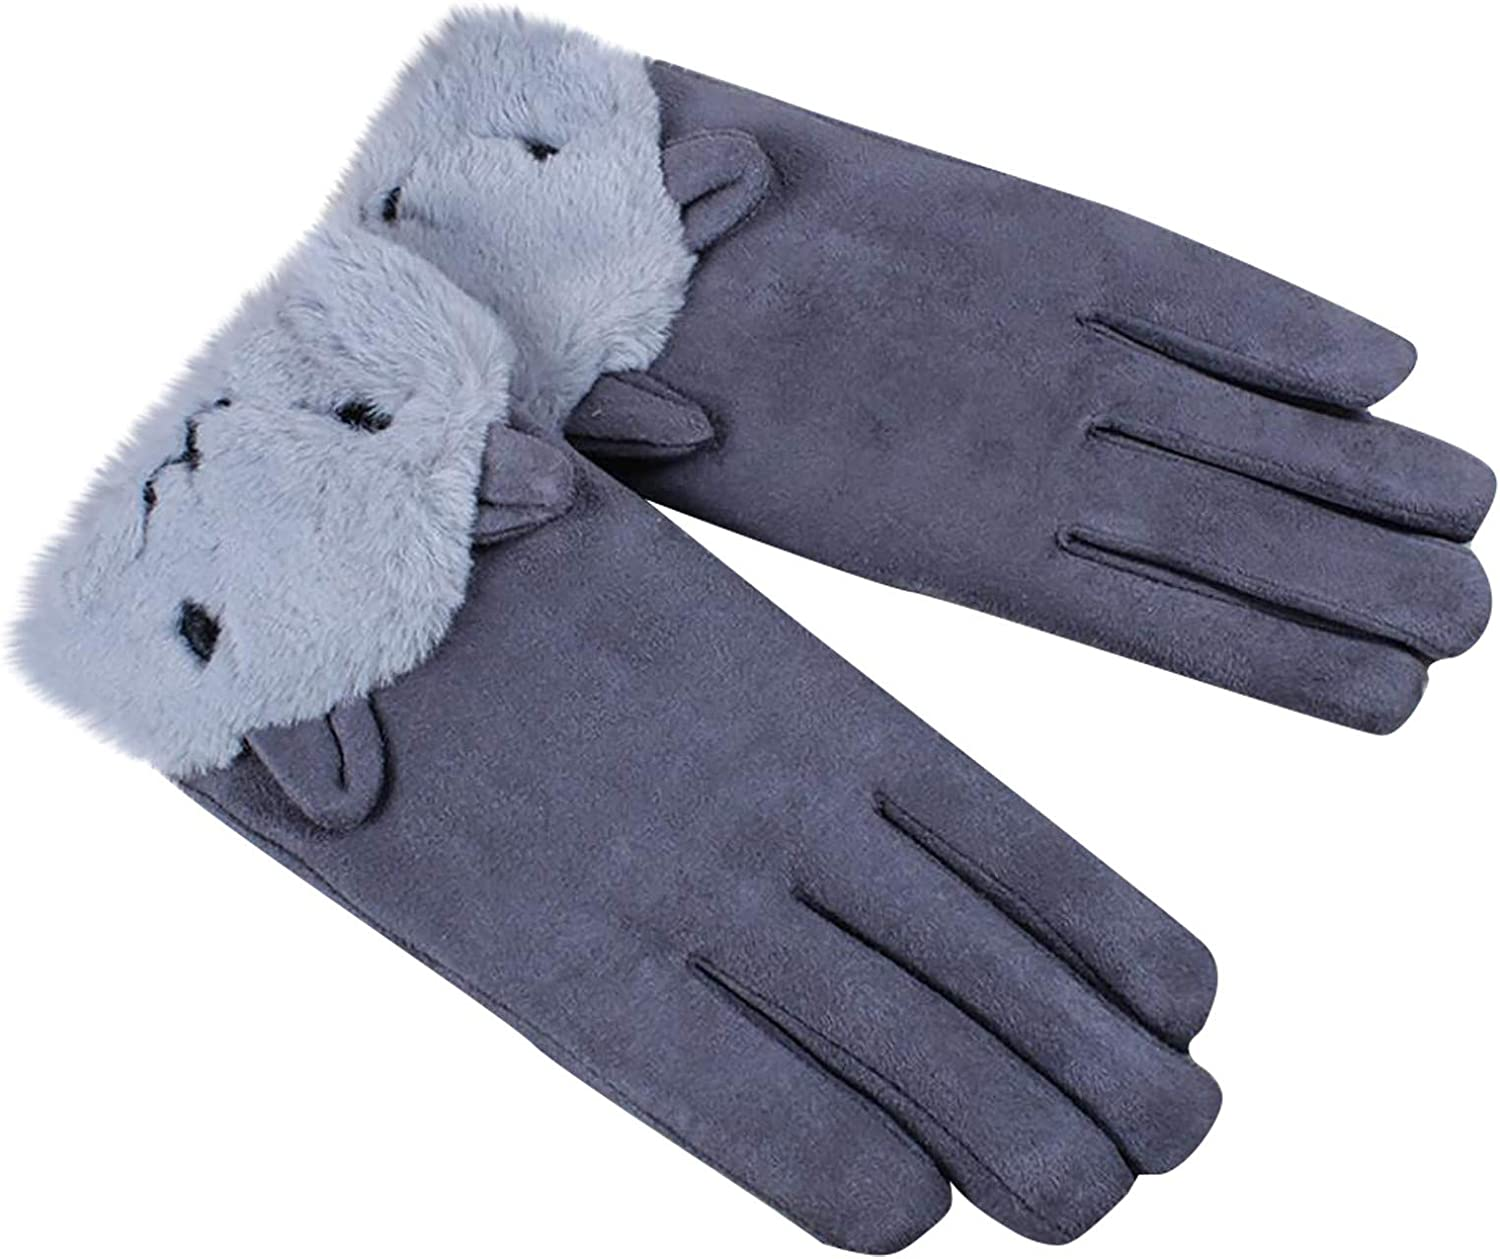 Womens Thicken Gloves Warm Winter Hand Warmer Riding Gloves with Cute Animal Trim Plush Full Finger Gloves with Fur Trim